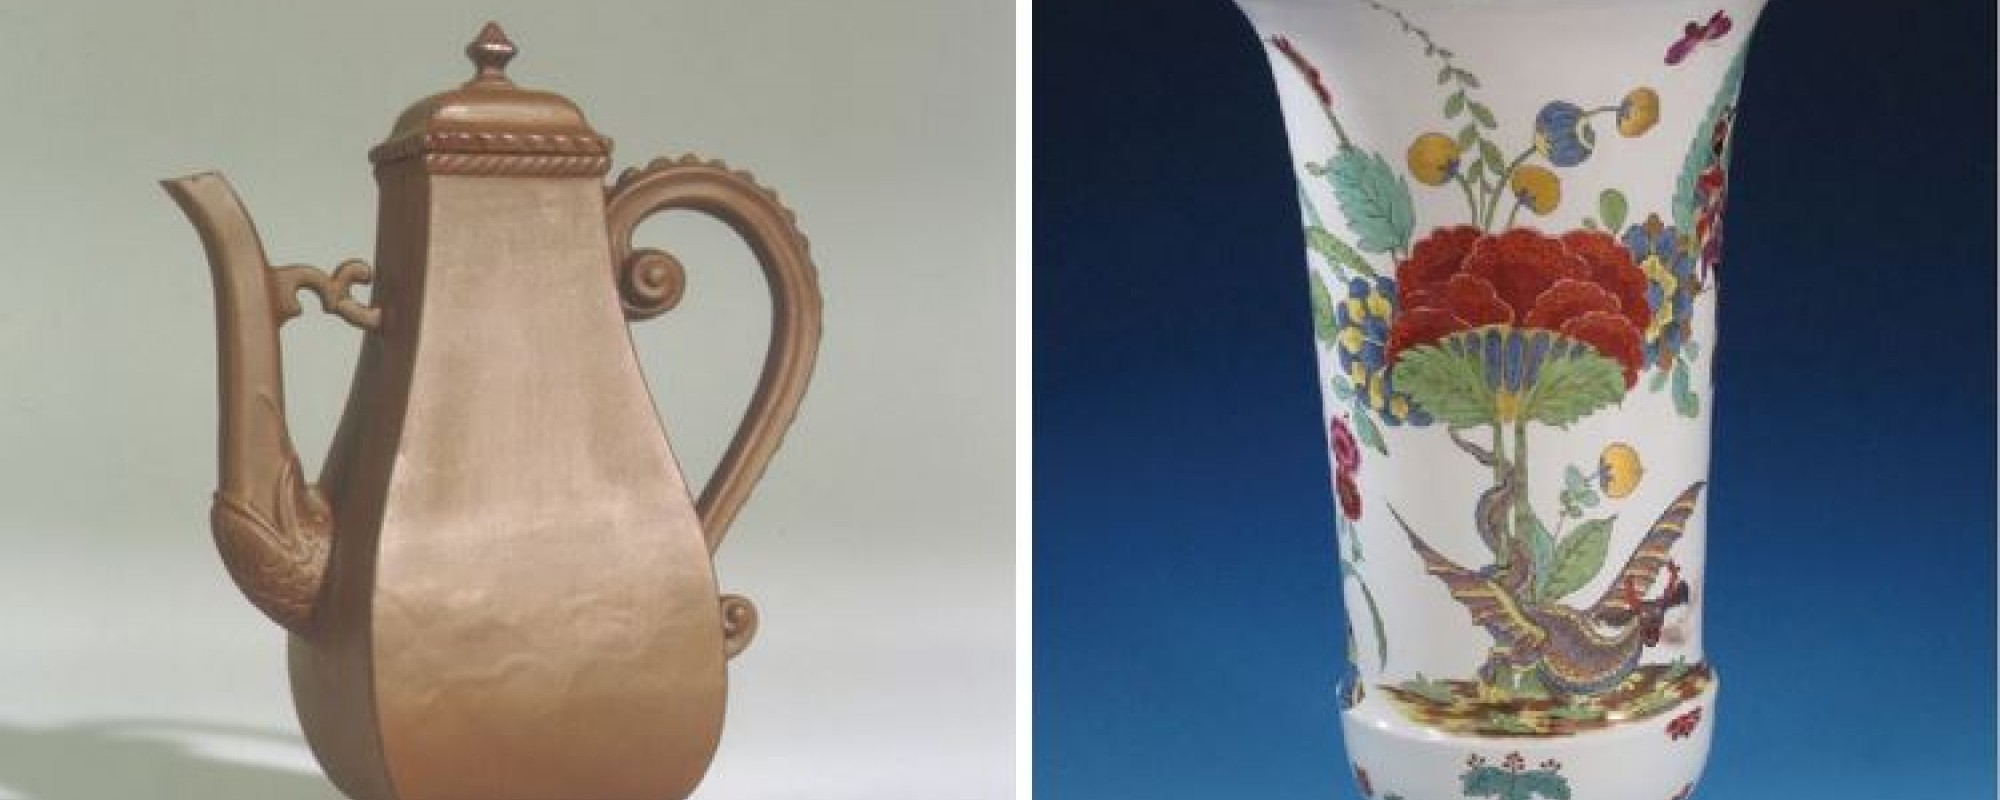 stone coffeepot and porcelain vase with floral detail